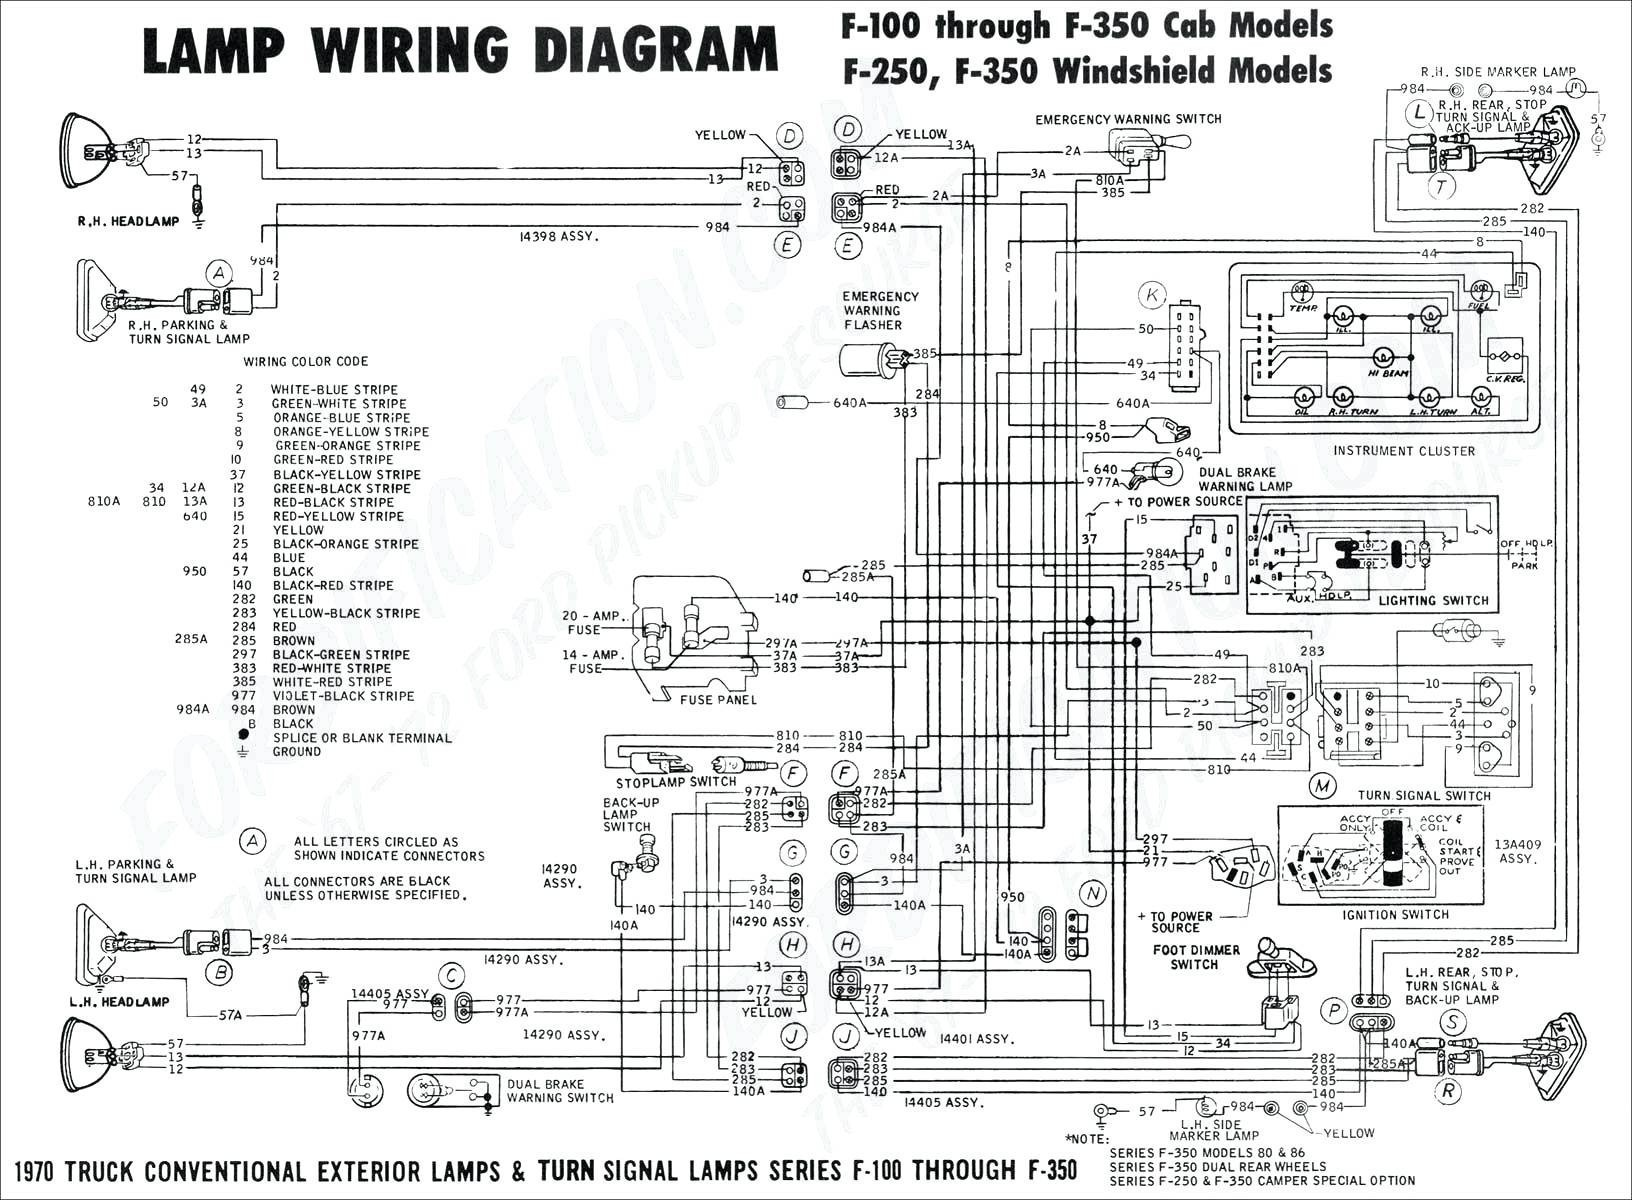 2000 Nissan Maxima Engine Diagram 2000 Nissan Maxima Fuse Diagram Of 2000 Nissan Maxima Engine Diagram